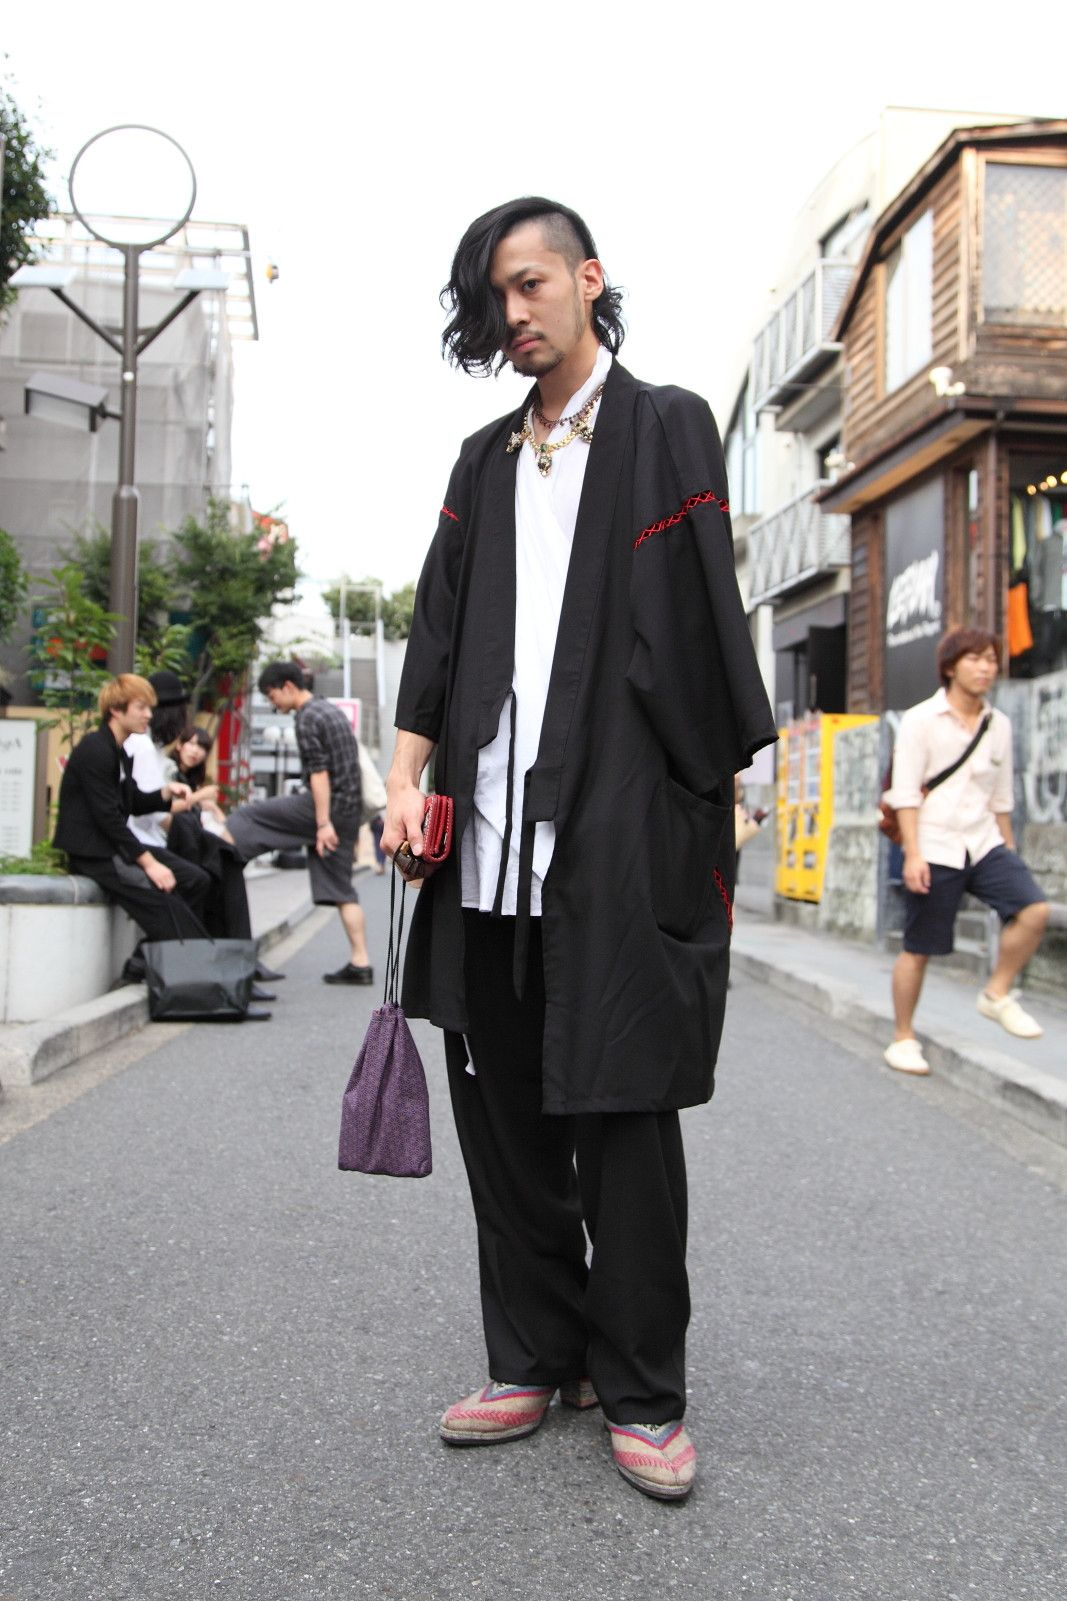 Image Result For Modern Japanese Street Fashion Japanese Street